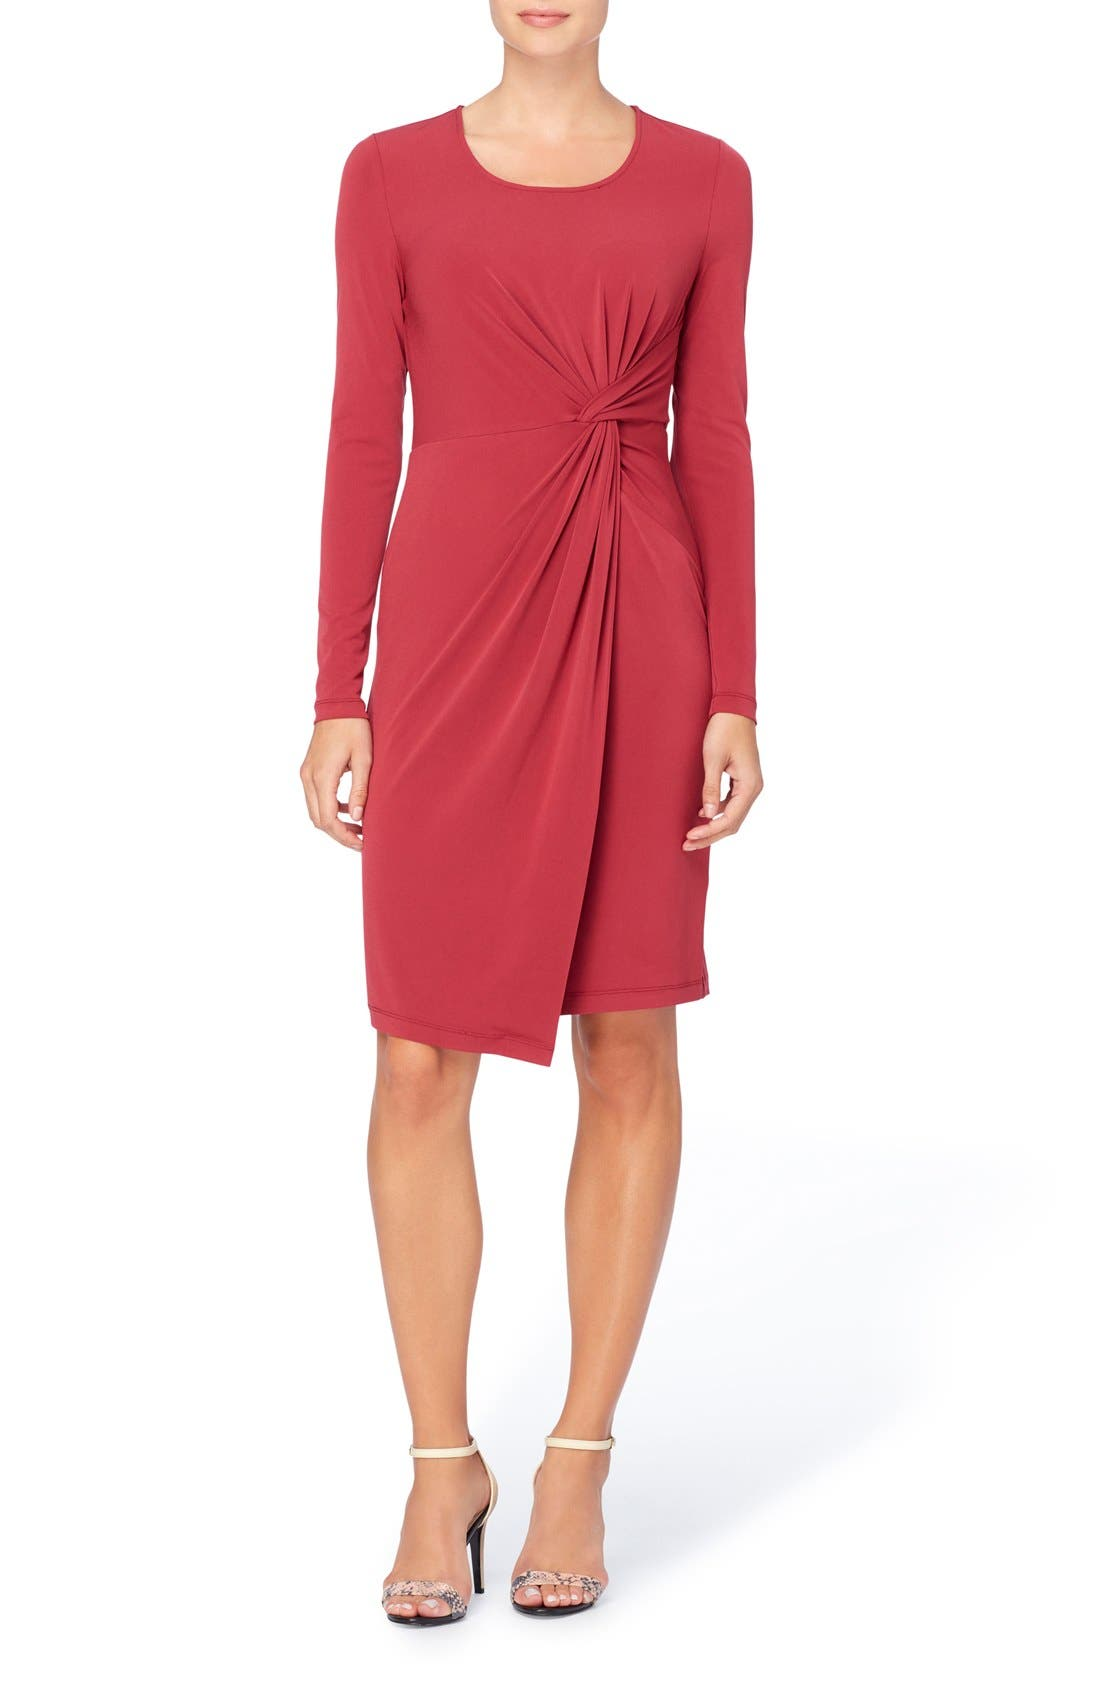 Catherine Catherine Malandrino 'Adele' Twist Front Sheath Dress